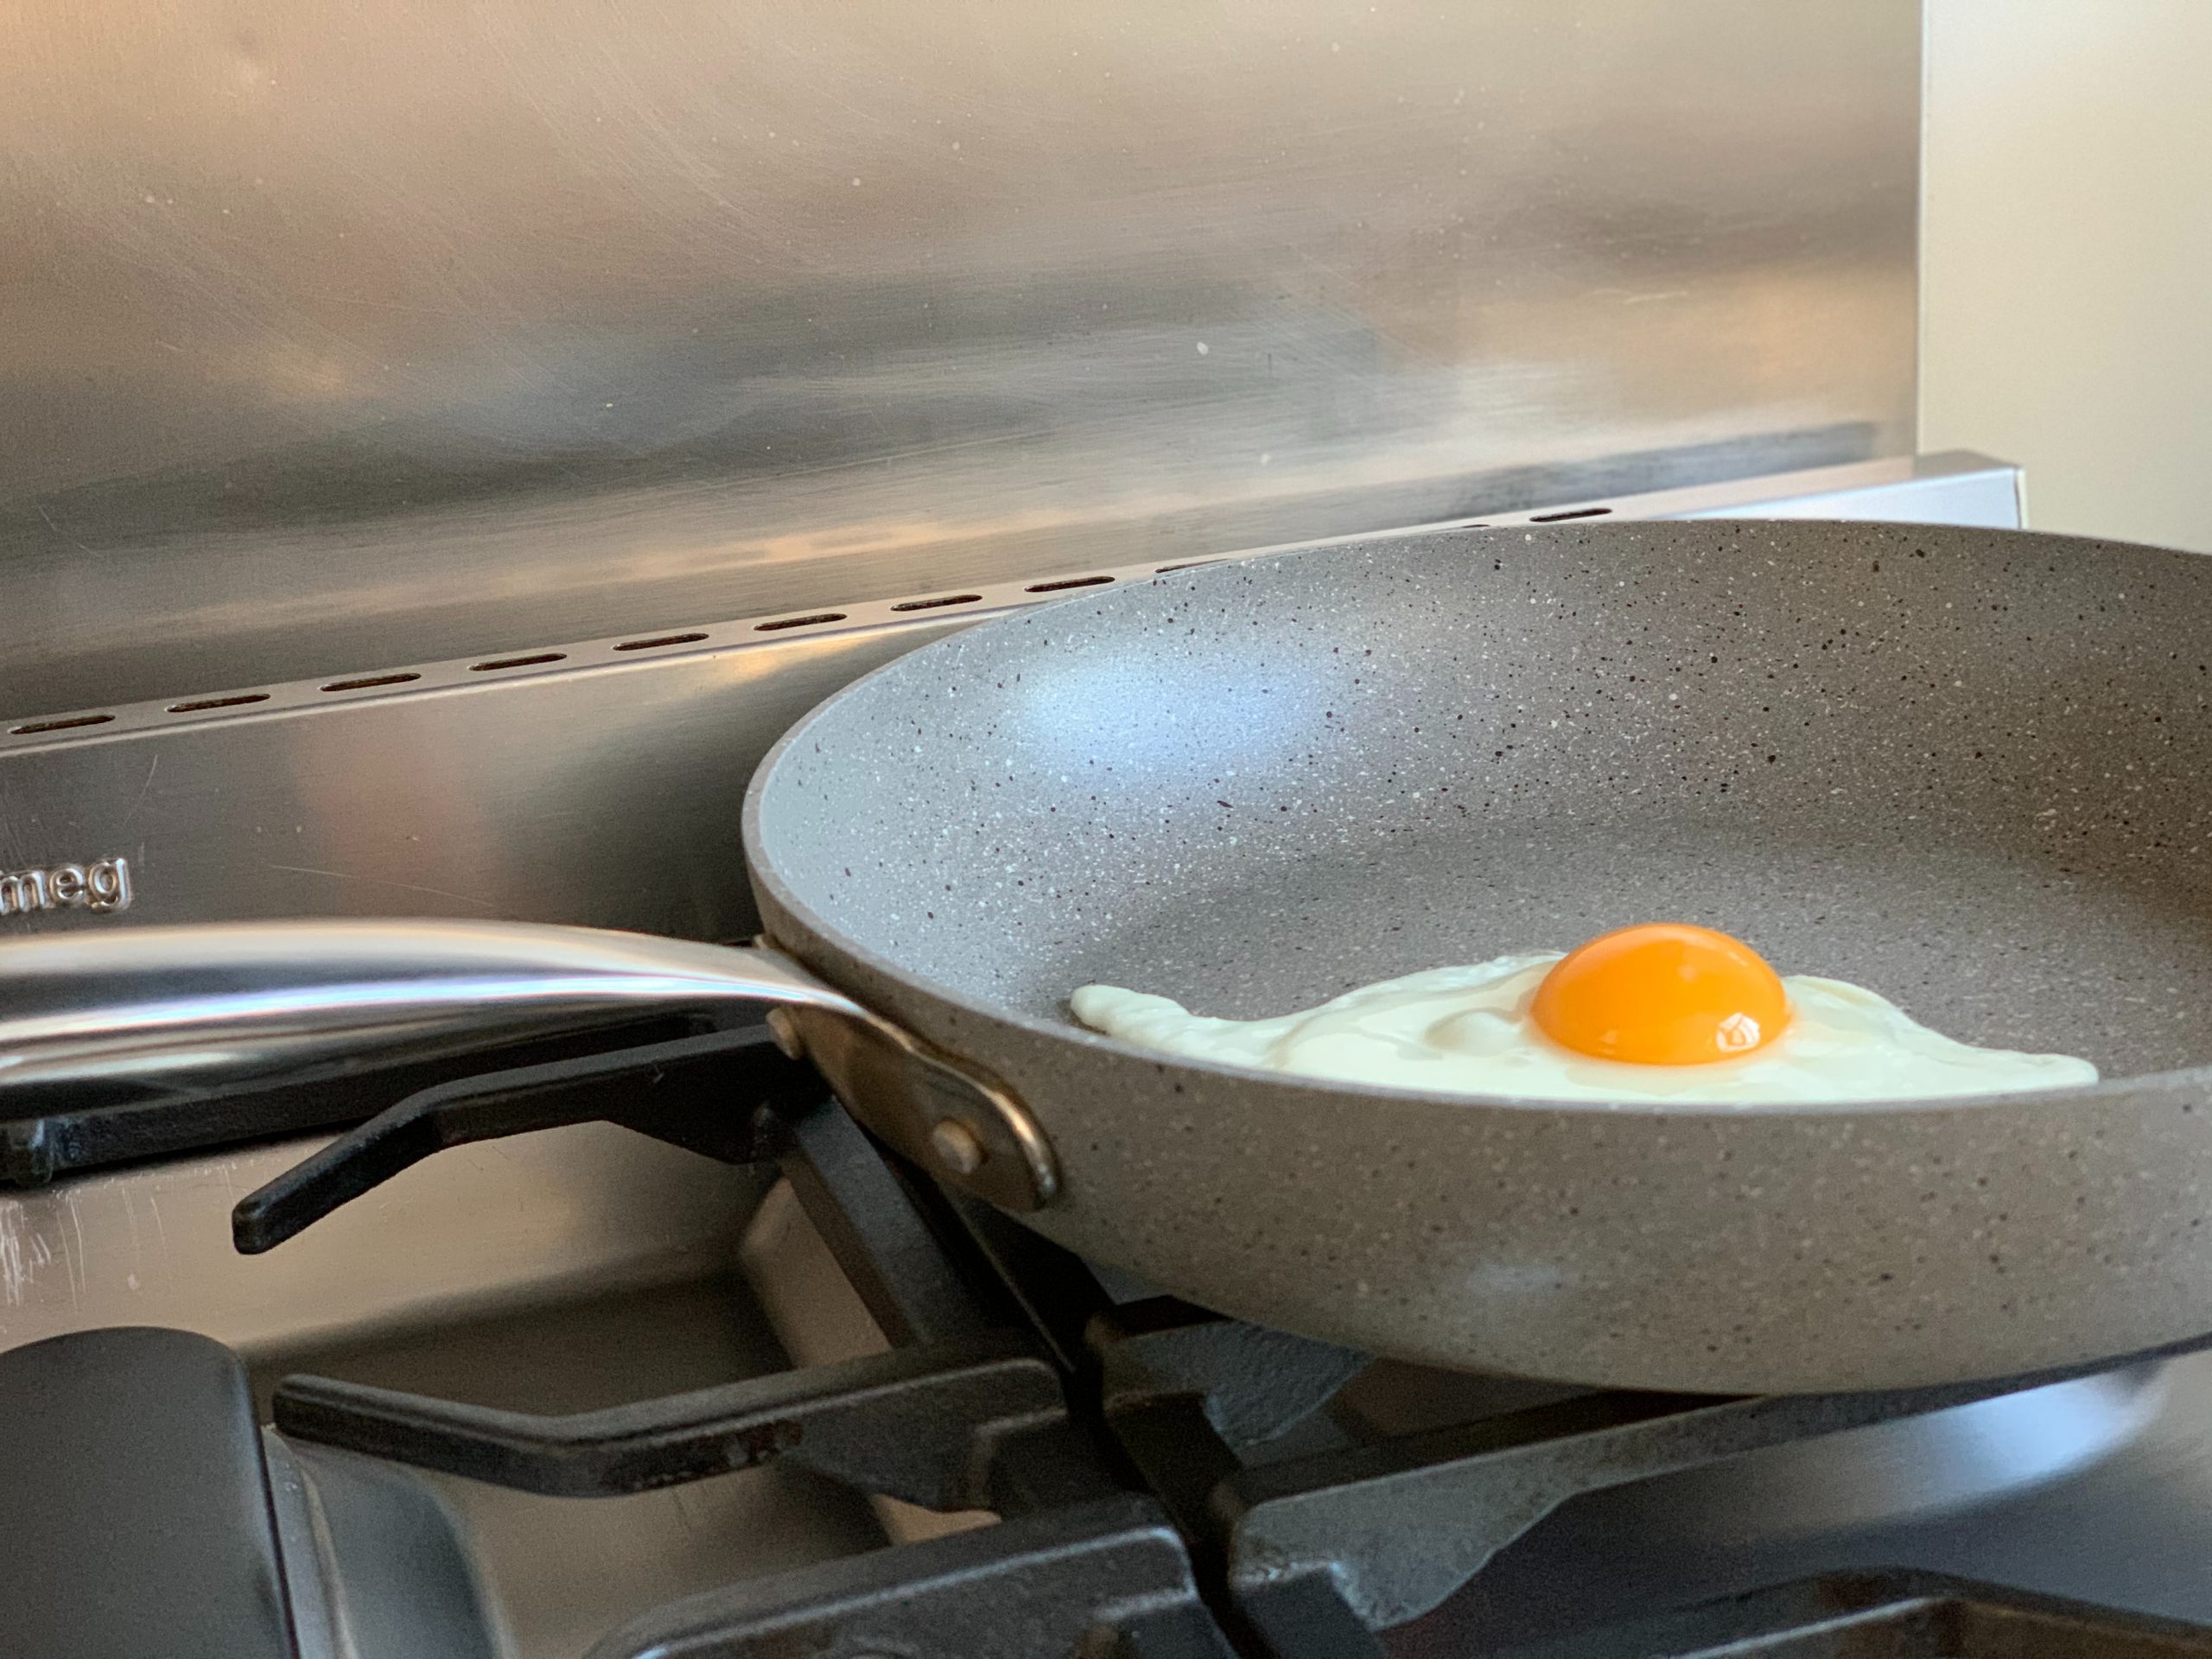 10 Best Non-Stick Frying Pans to Buy in Singapore